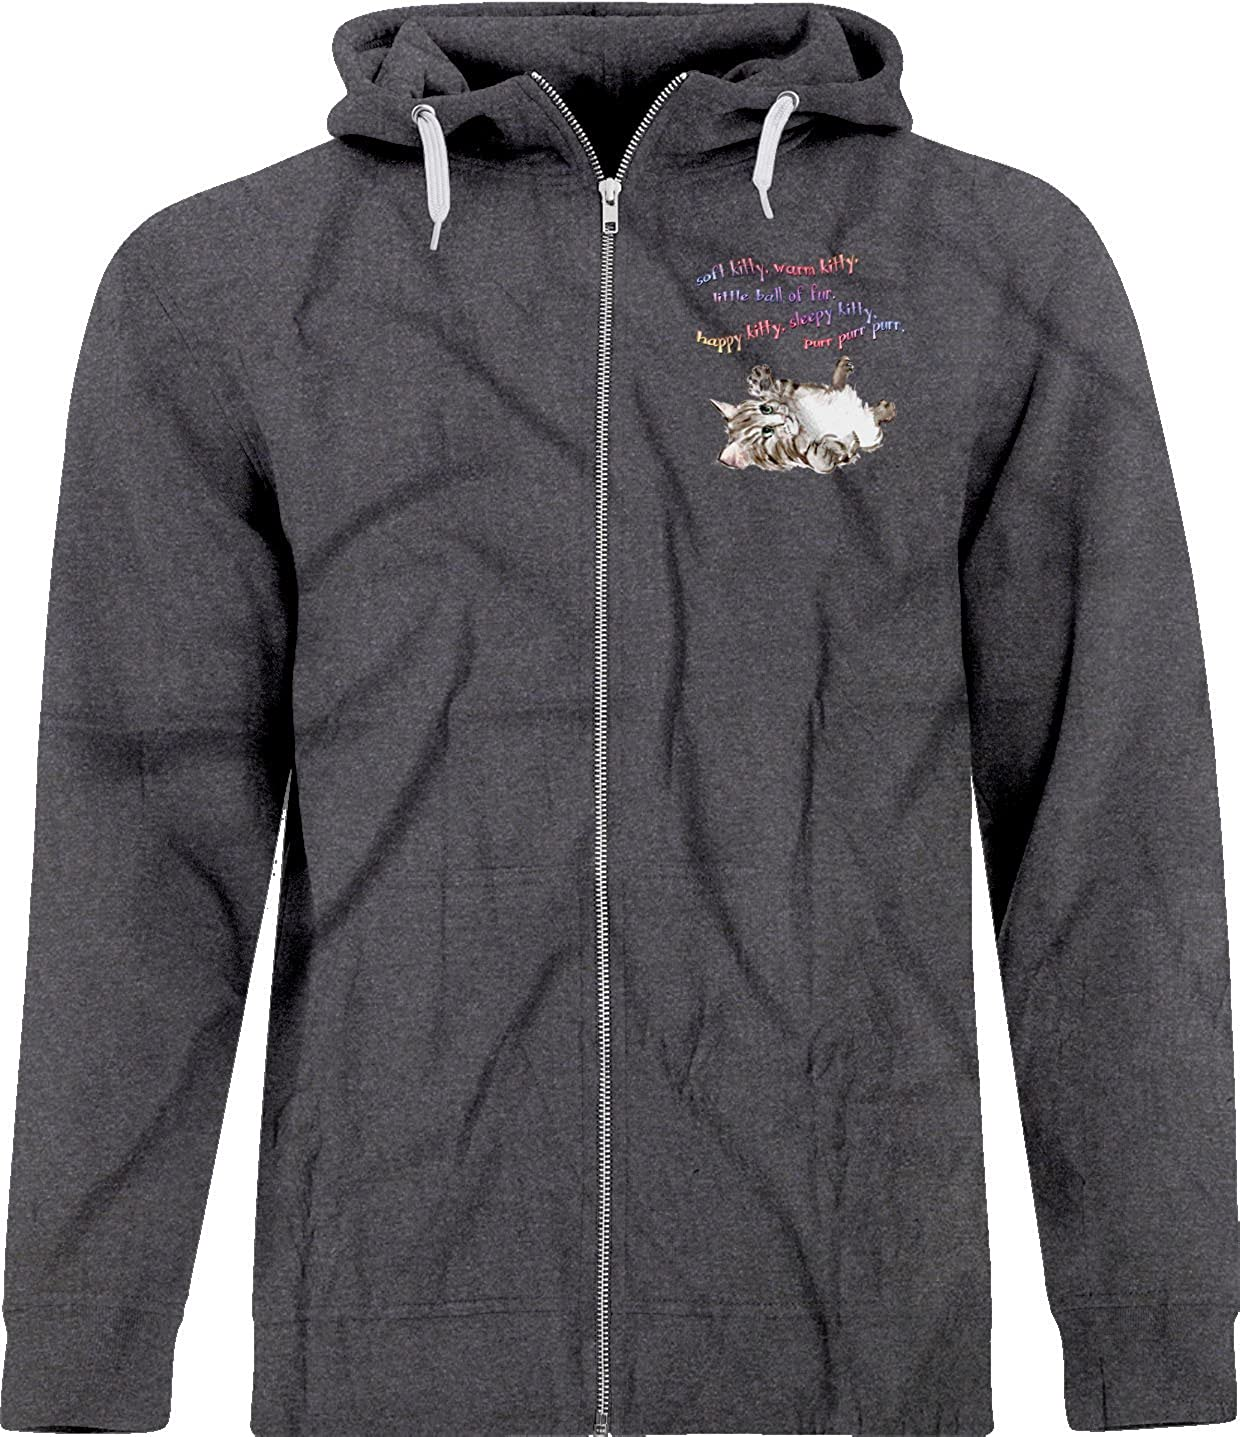 BSW Youth Boys Soft Kitty Sheldon Cooper Big Bang Theory Song Zip Hoodie SM Navy